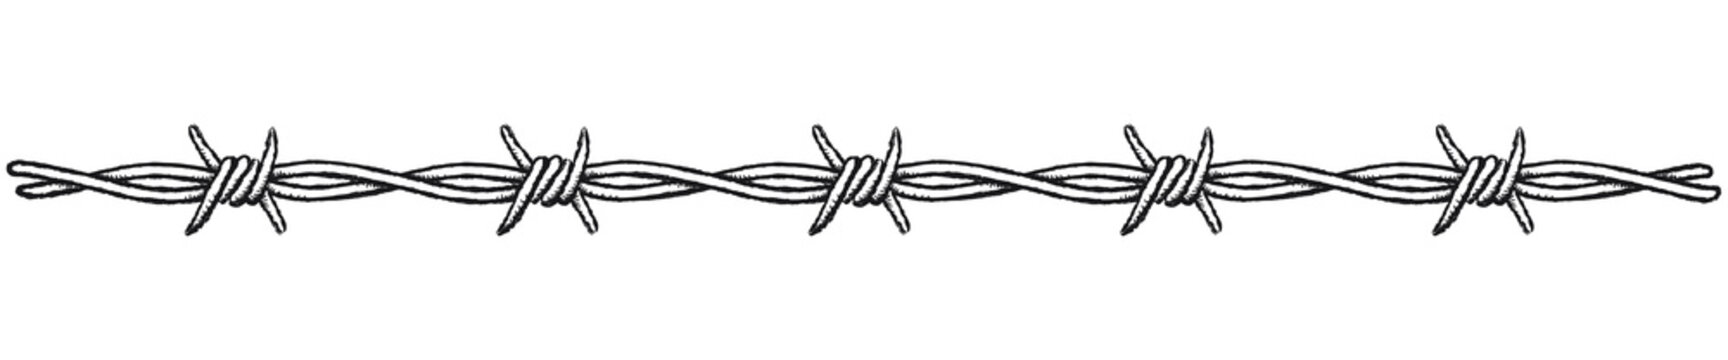 Barbed wire border, horizontal. Clip-art illustration of a barbed wire border on a white background.